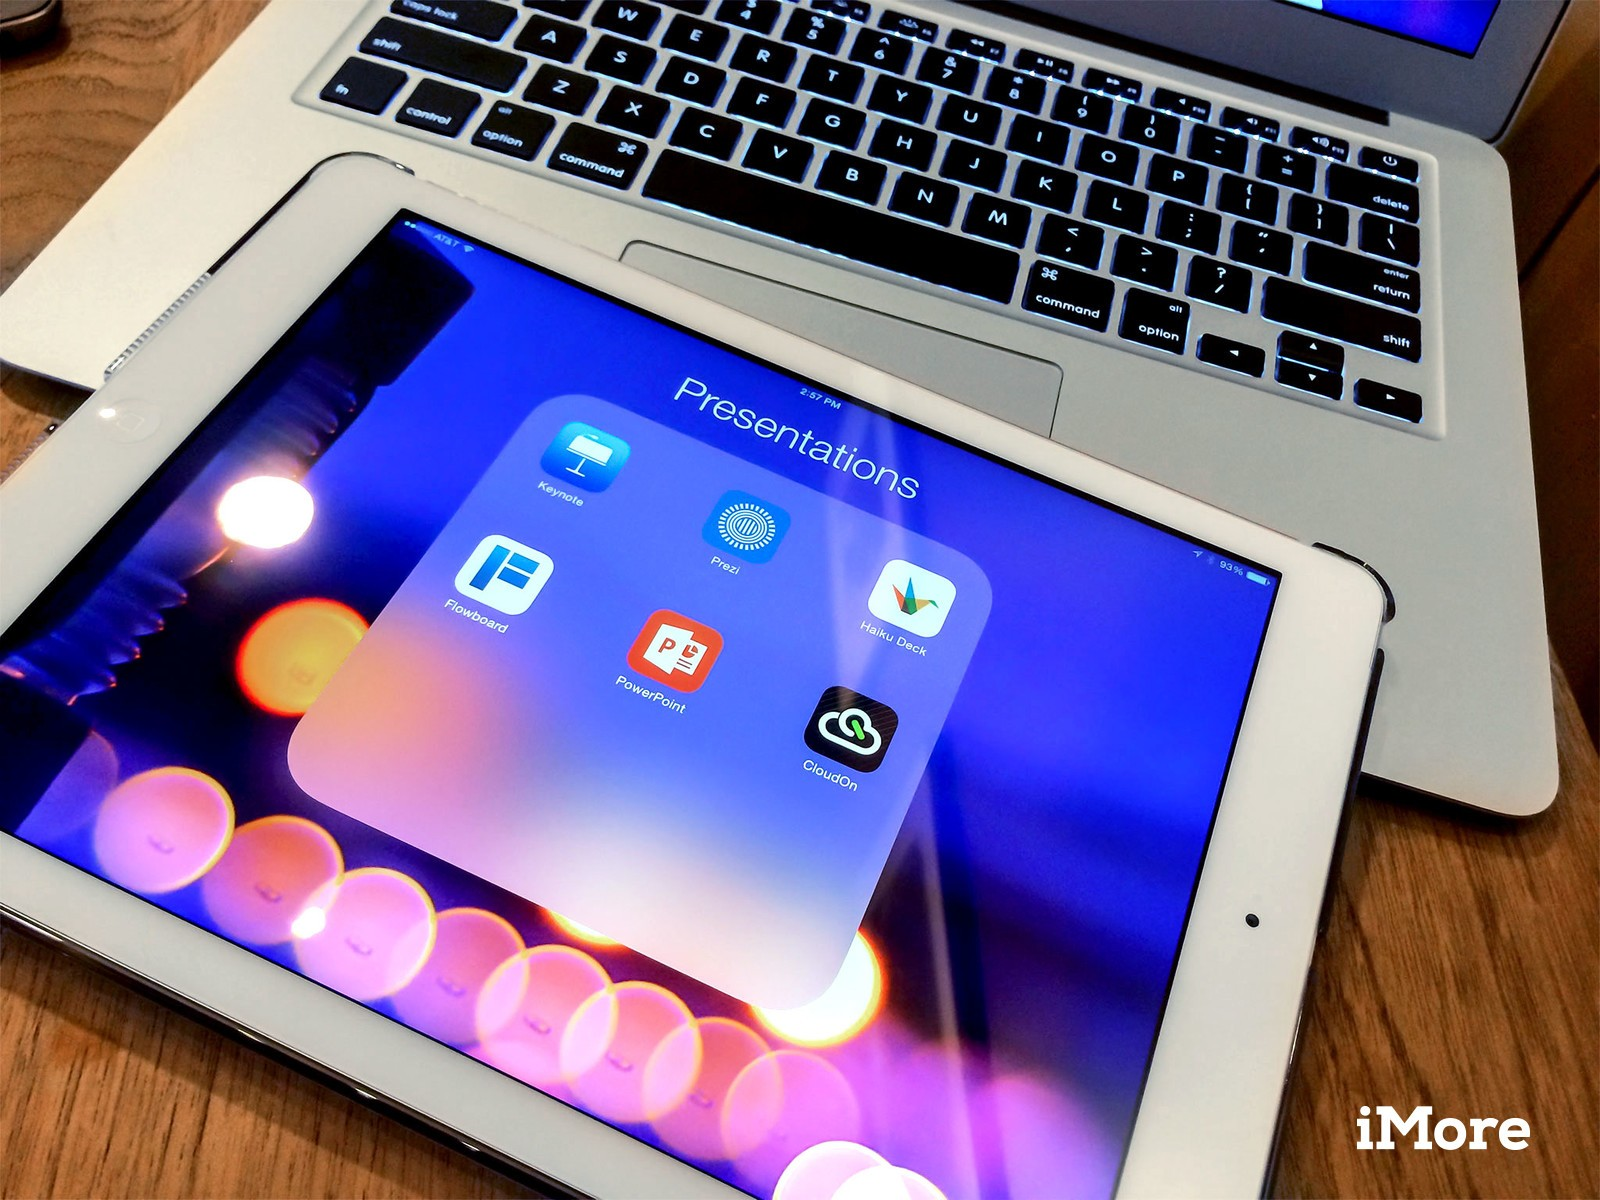 Best presentation apps for iPad: Keynote, PowerPoint, Haiku Deck, and more!